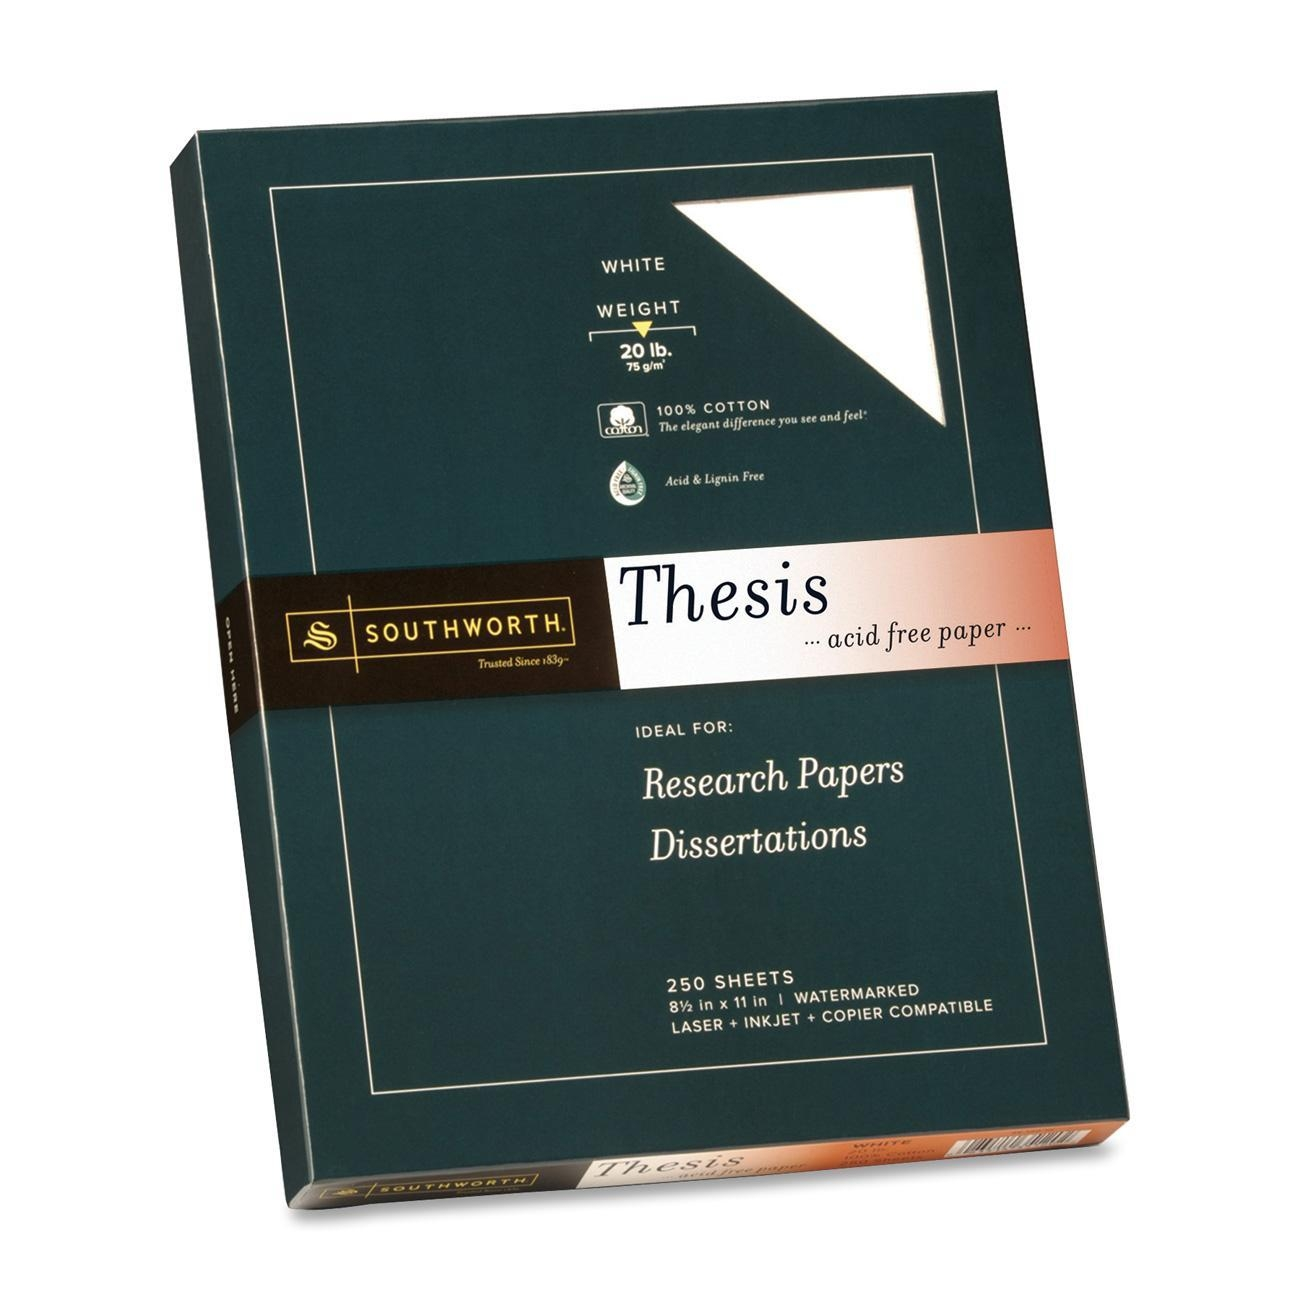 thesis on lubricants Click here click here click here click here click here if you need high-quality papers done quickly and with zero traces of plagiarism, papercoach is the.